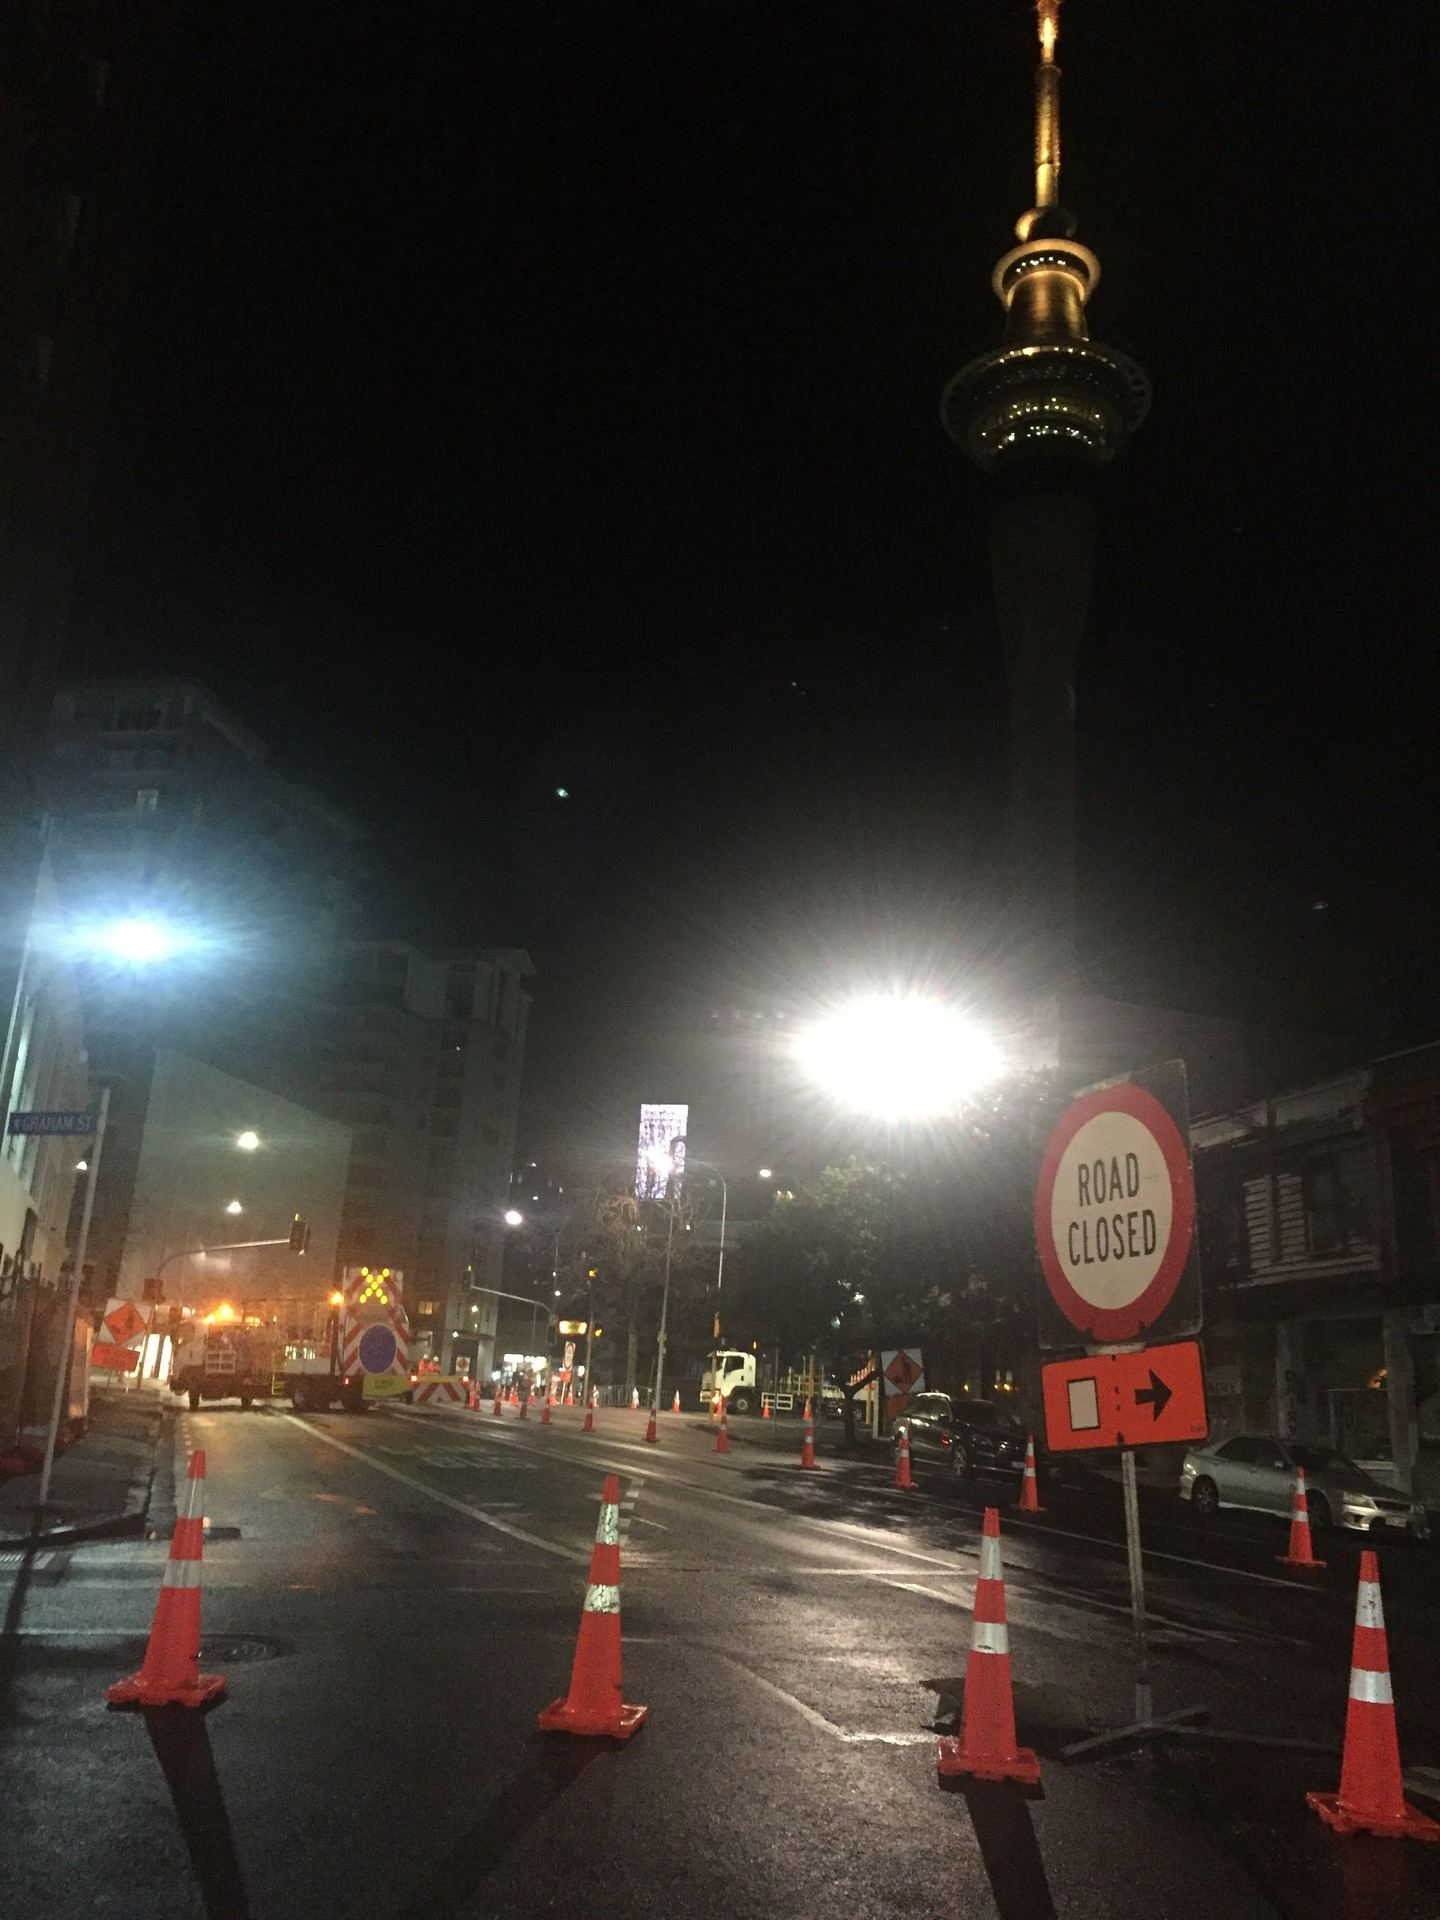 Traffic chaos expected in Auckland CBD this morning due to diversions after panel fell from building